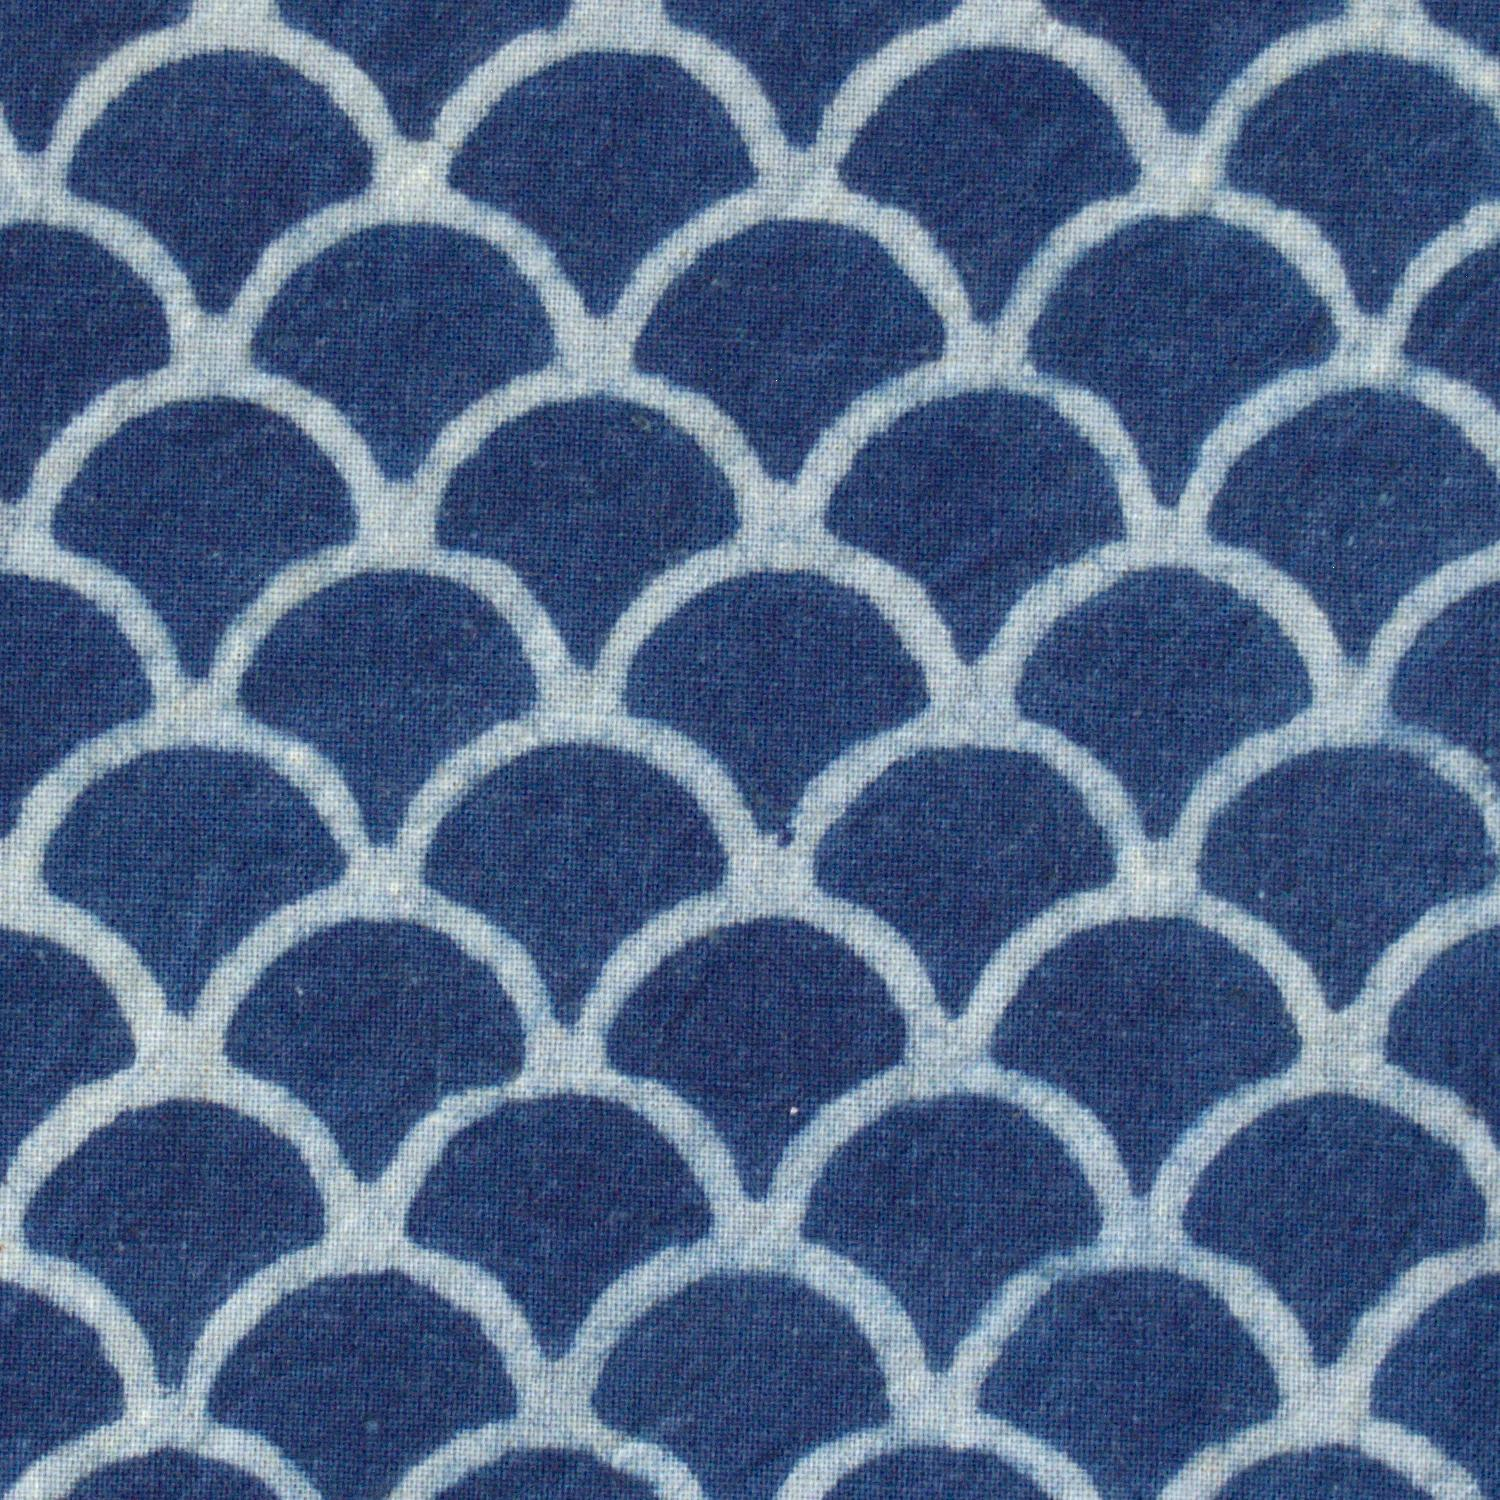 100% Block-Printed Cotton Fabric From India- Ajrak - Indigo White Resist Scales Print - Close Up